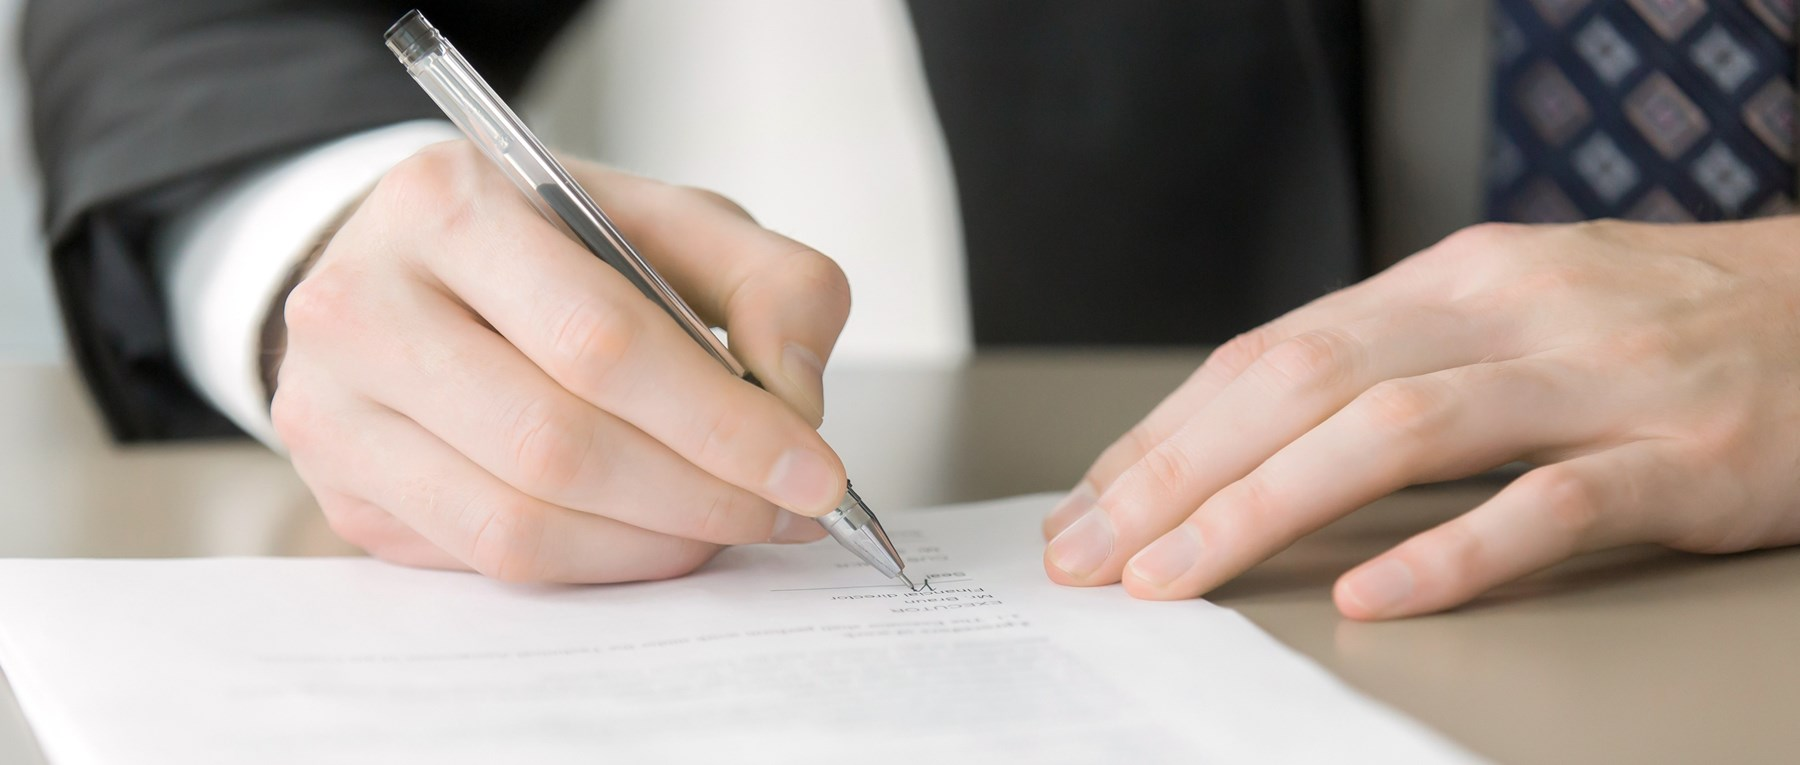 Man in a suit signing document